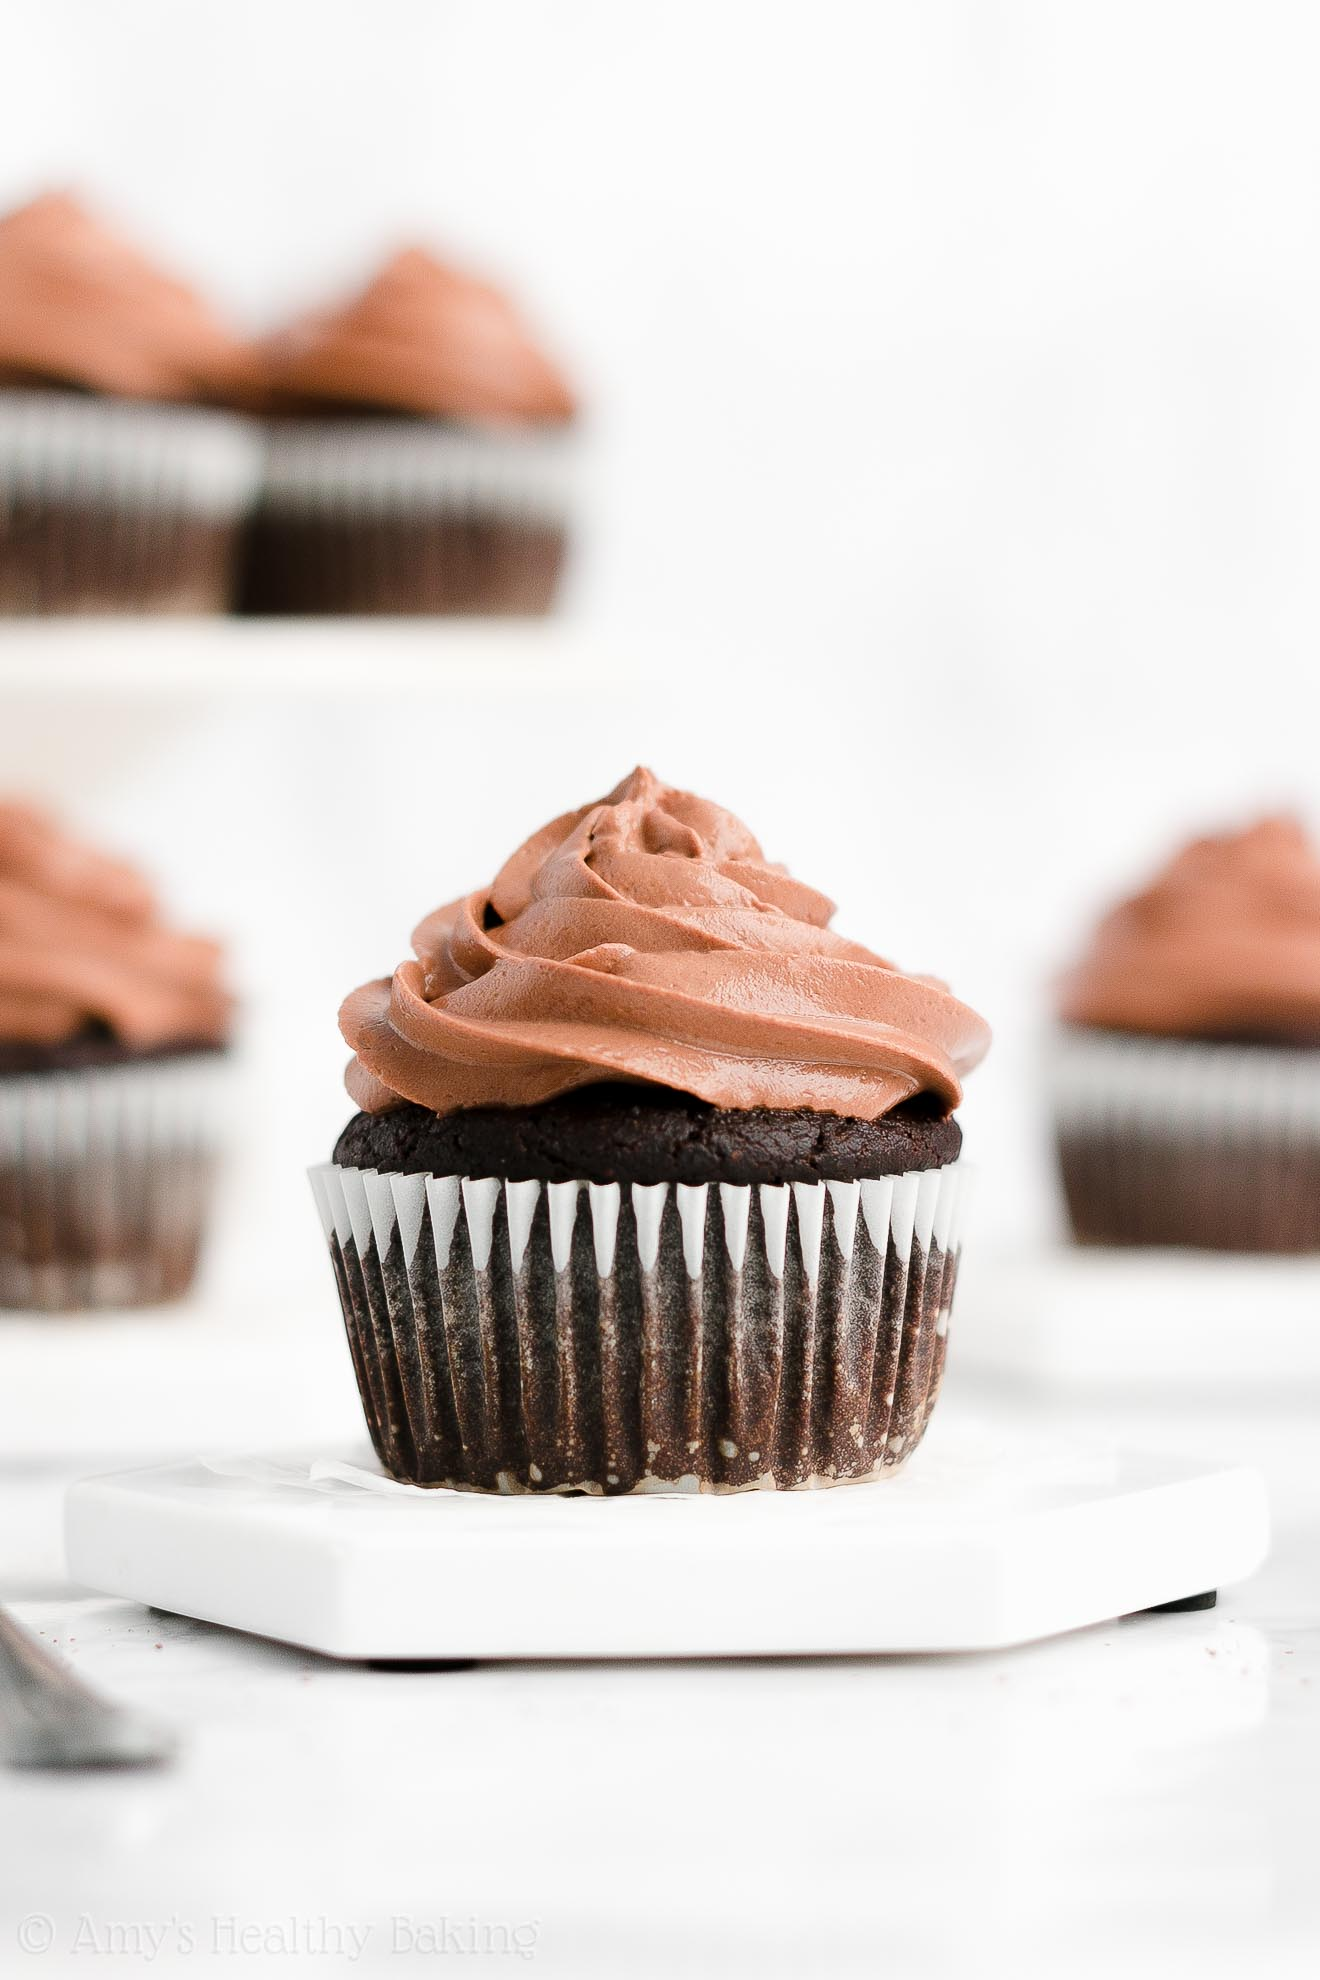 Best Easy Healthy Clean Eating Low Calorie Moist One-Bowl Chocolate Cupcakes